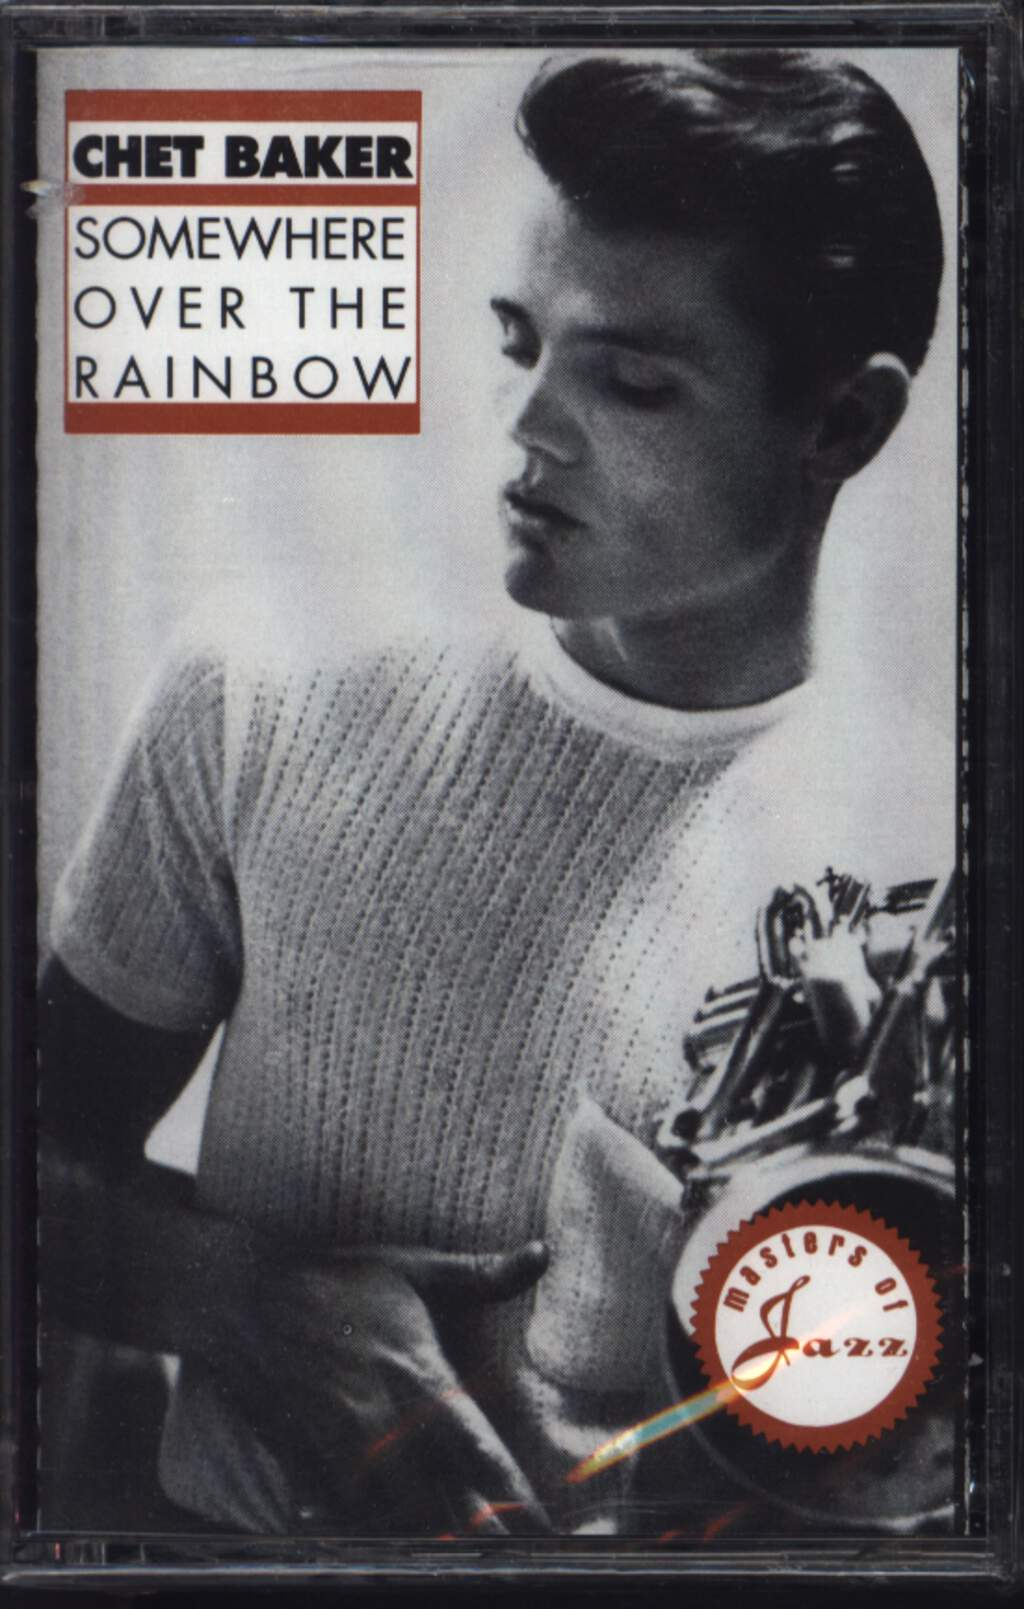 Chet Baker: Somewhere Over The Rainbow, Compact Cassette